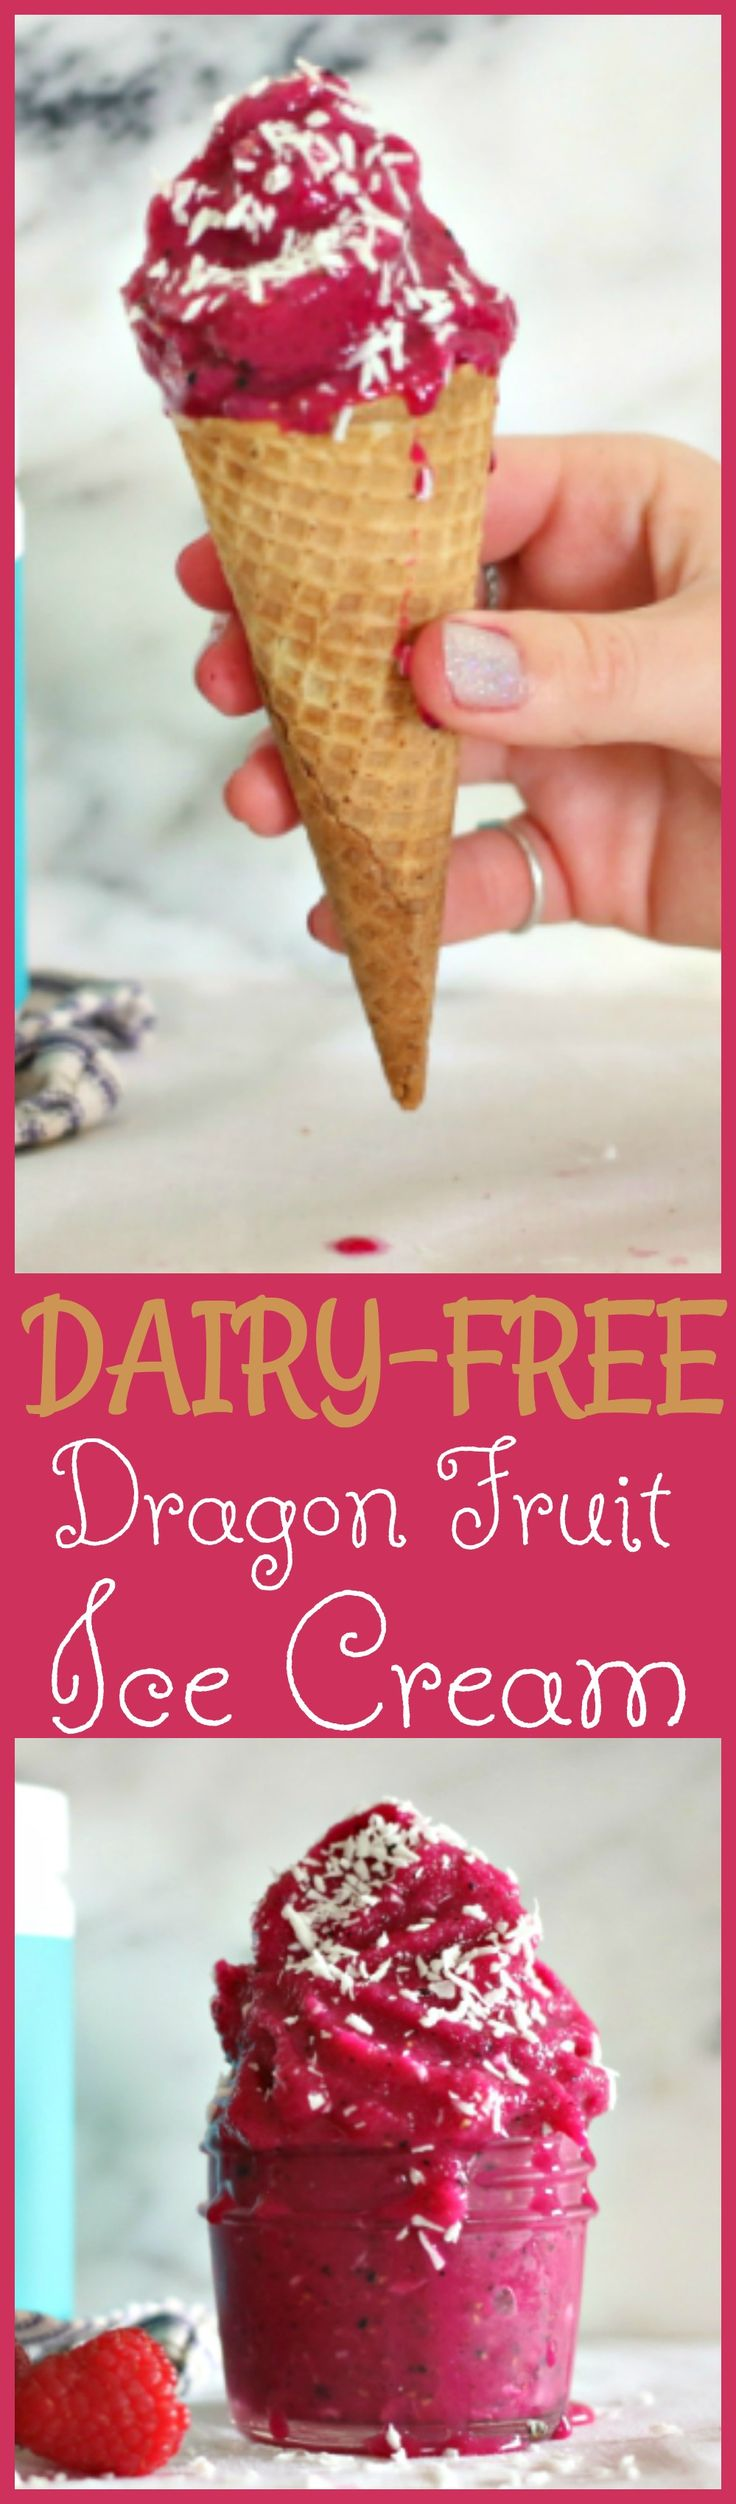 http://www.furtherfood.com/recipe/dragon-fruit-and-berry-ice-cream-further-collagen-no-sugar-added/